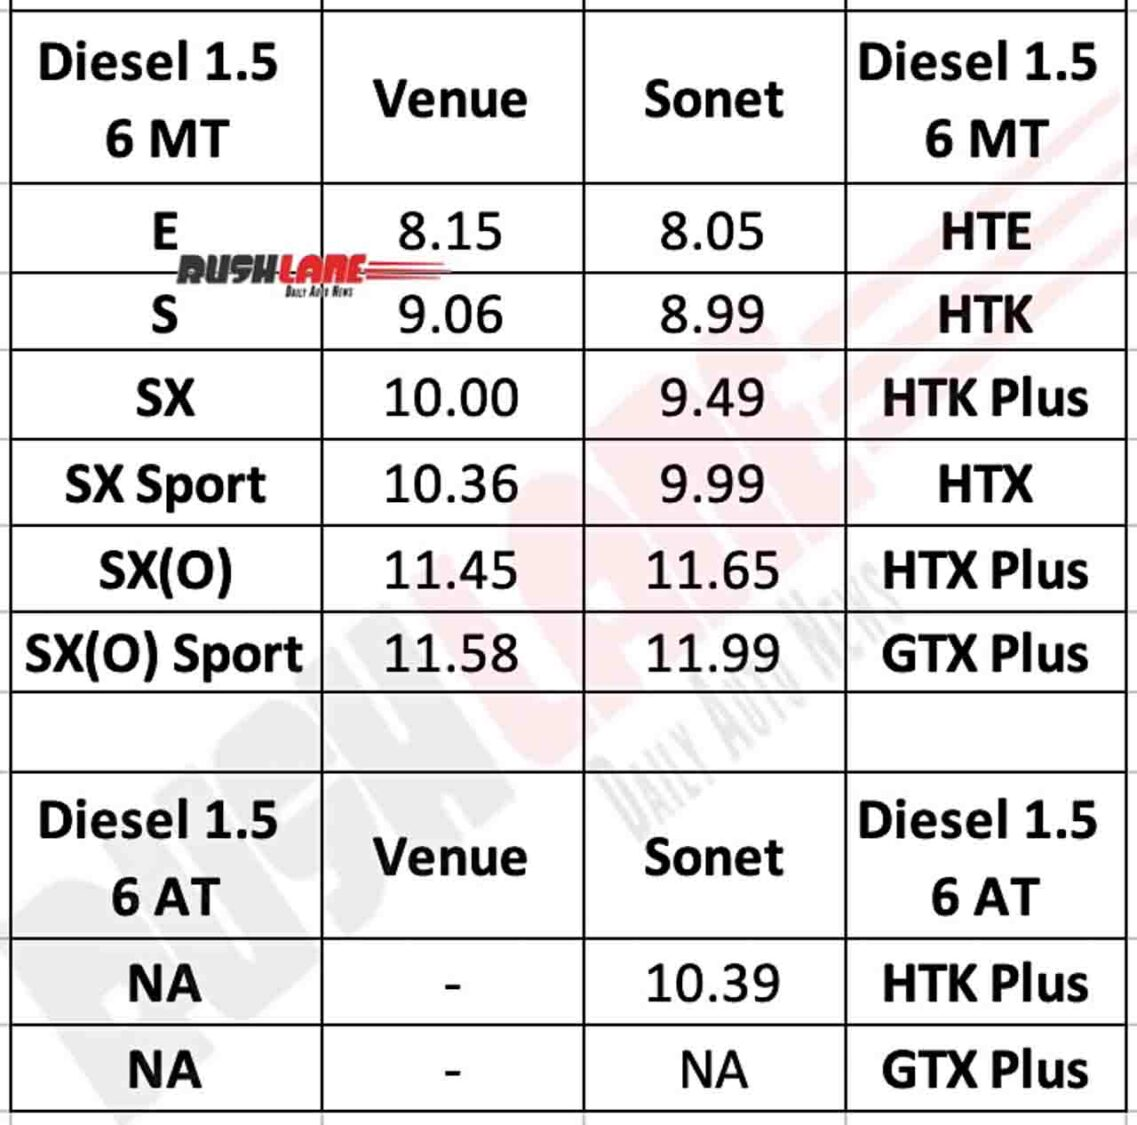 Sonet vs Venue Diesel Manual and Automatic variants Prices Compared